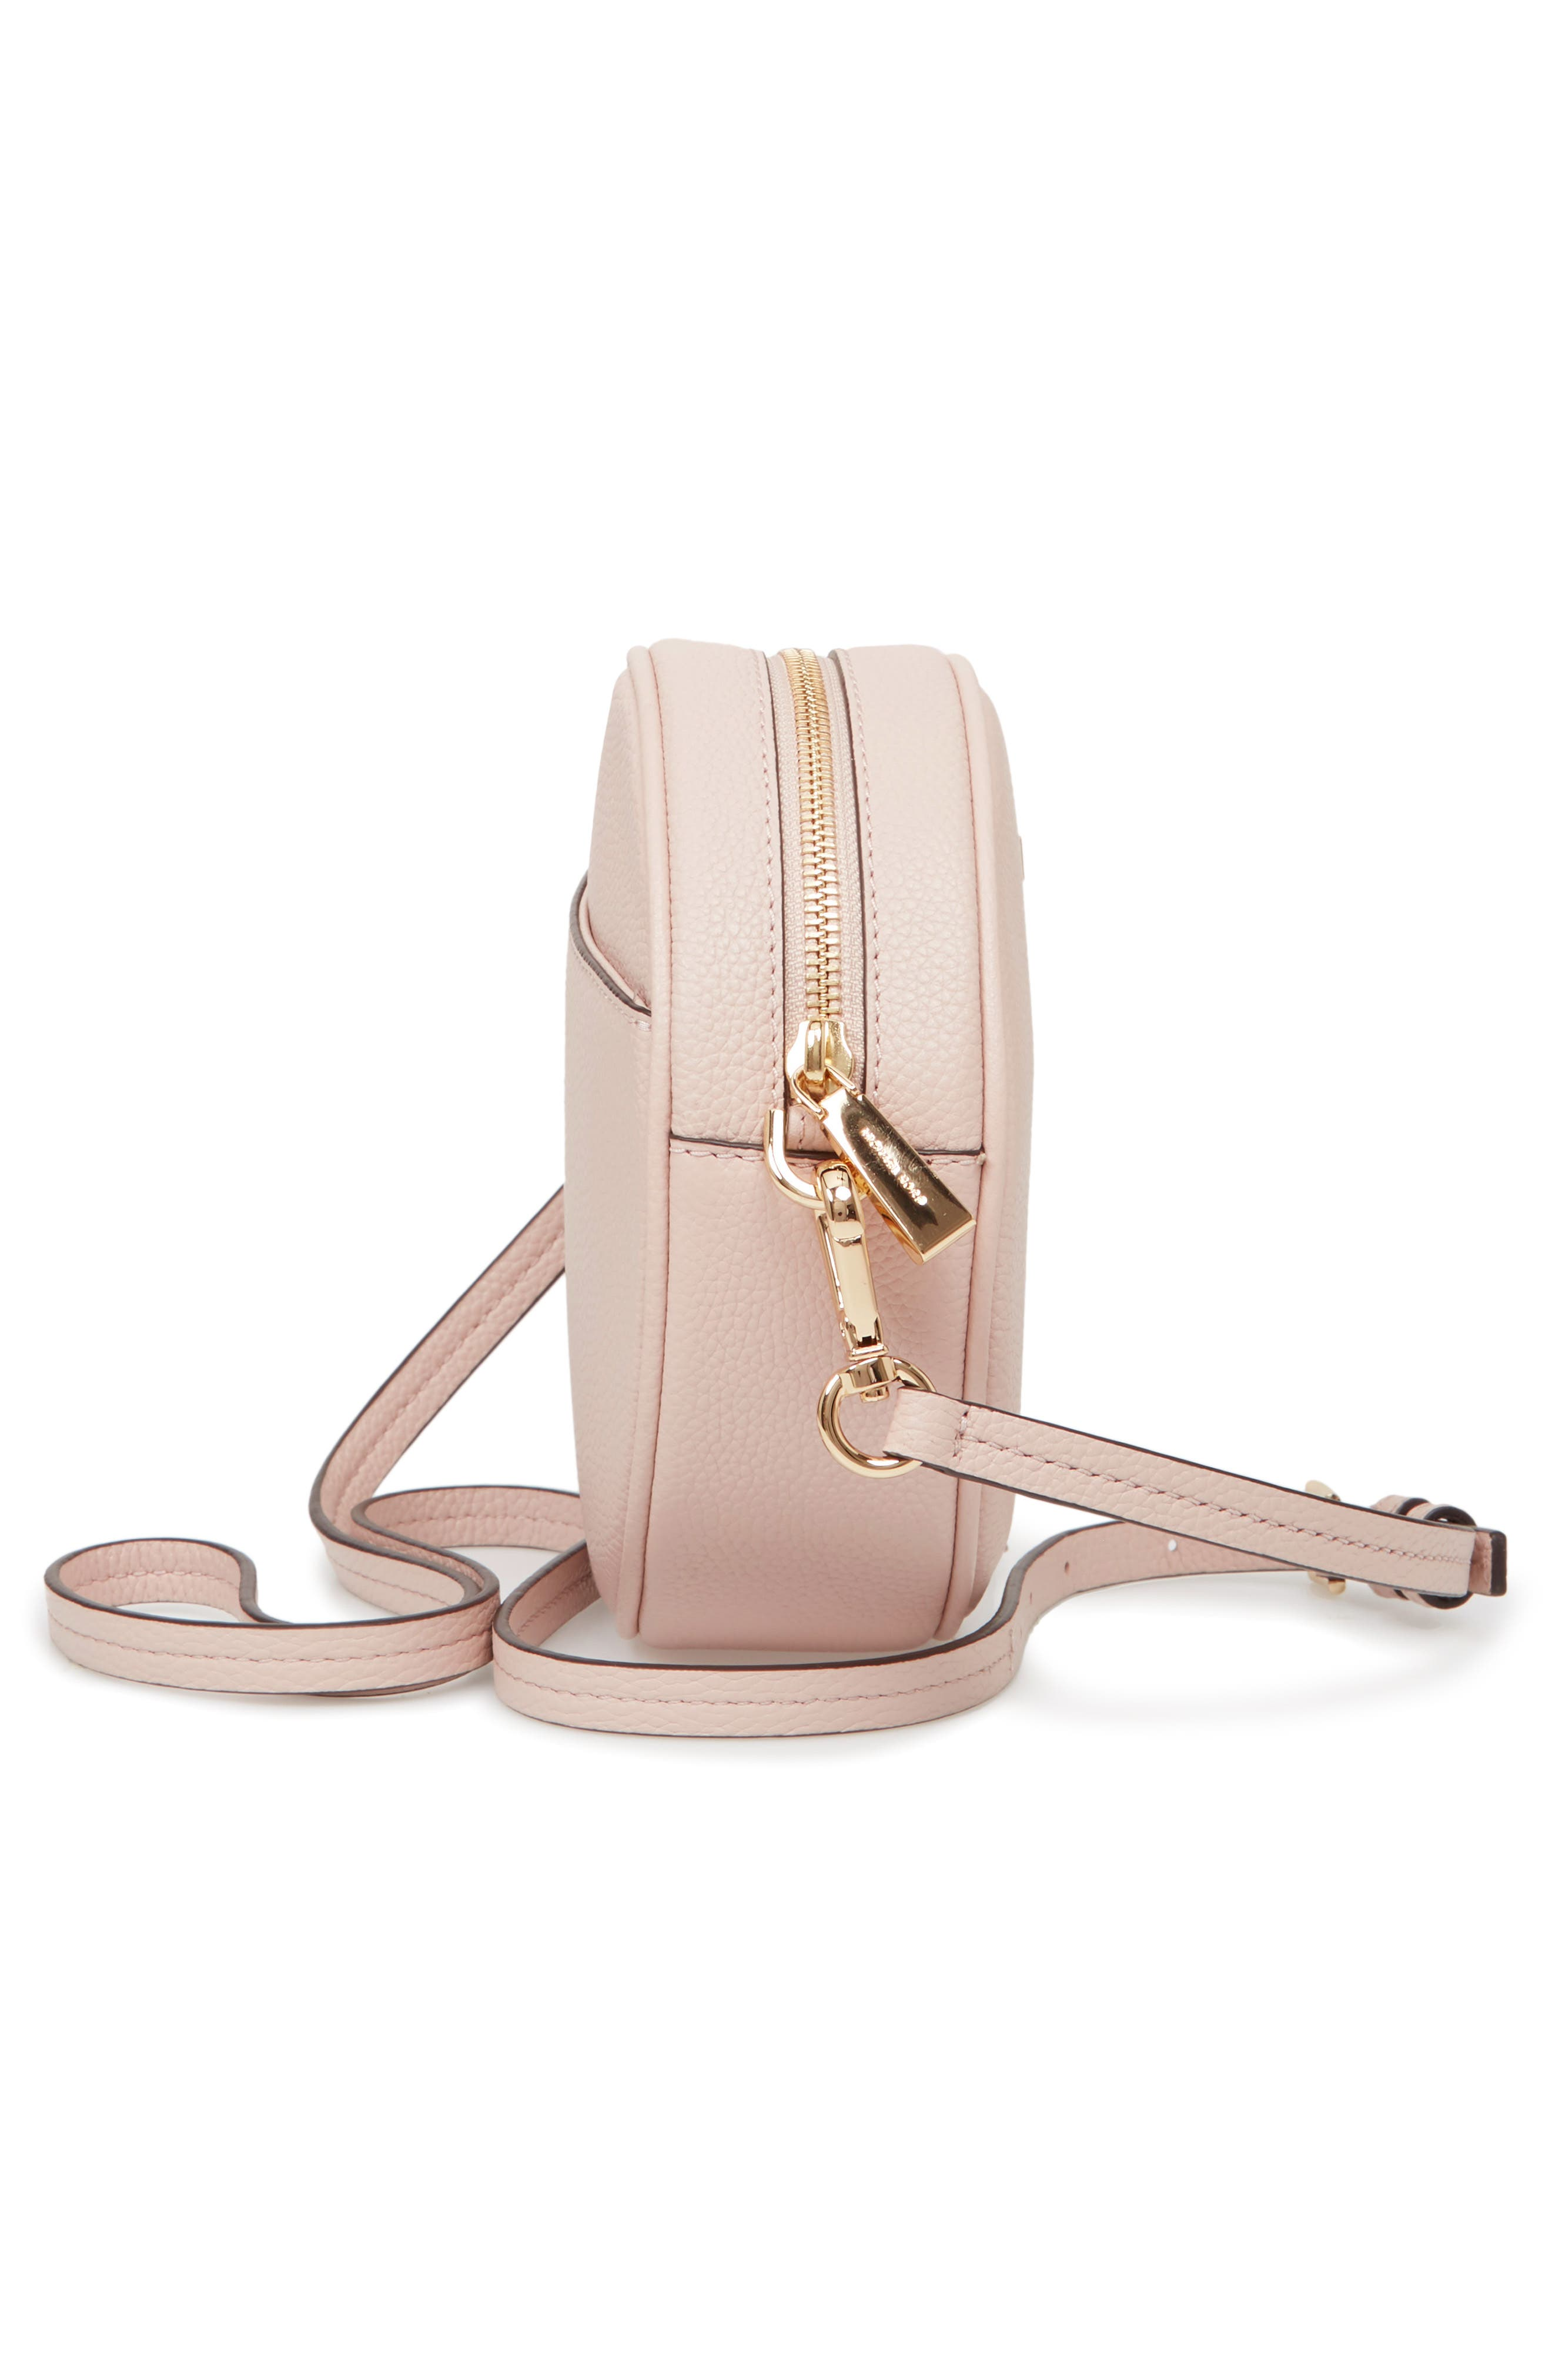 Medium Leather Canteen Bag,                             Alternate thumbnail 5, color,                             Soft Pink